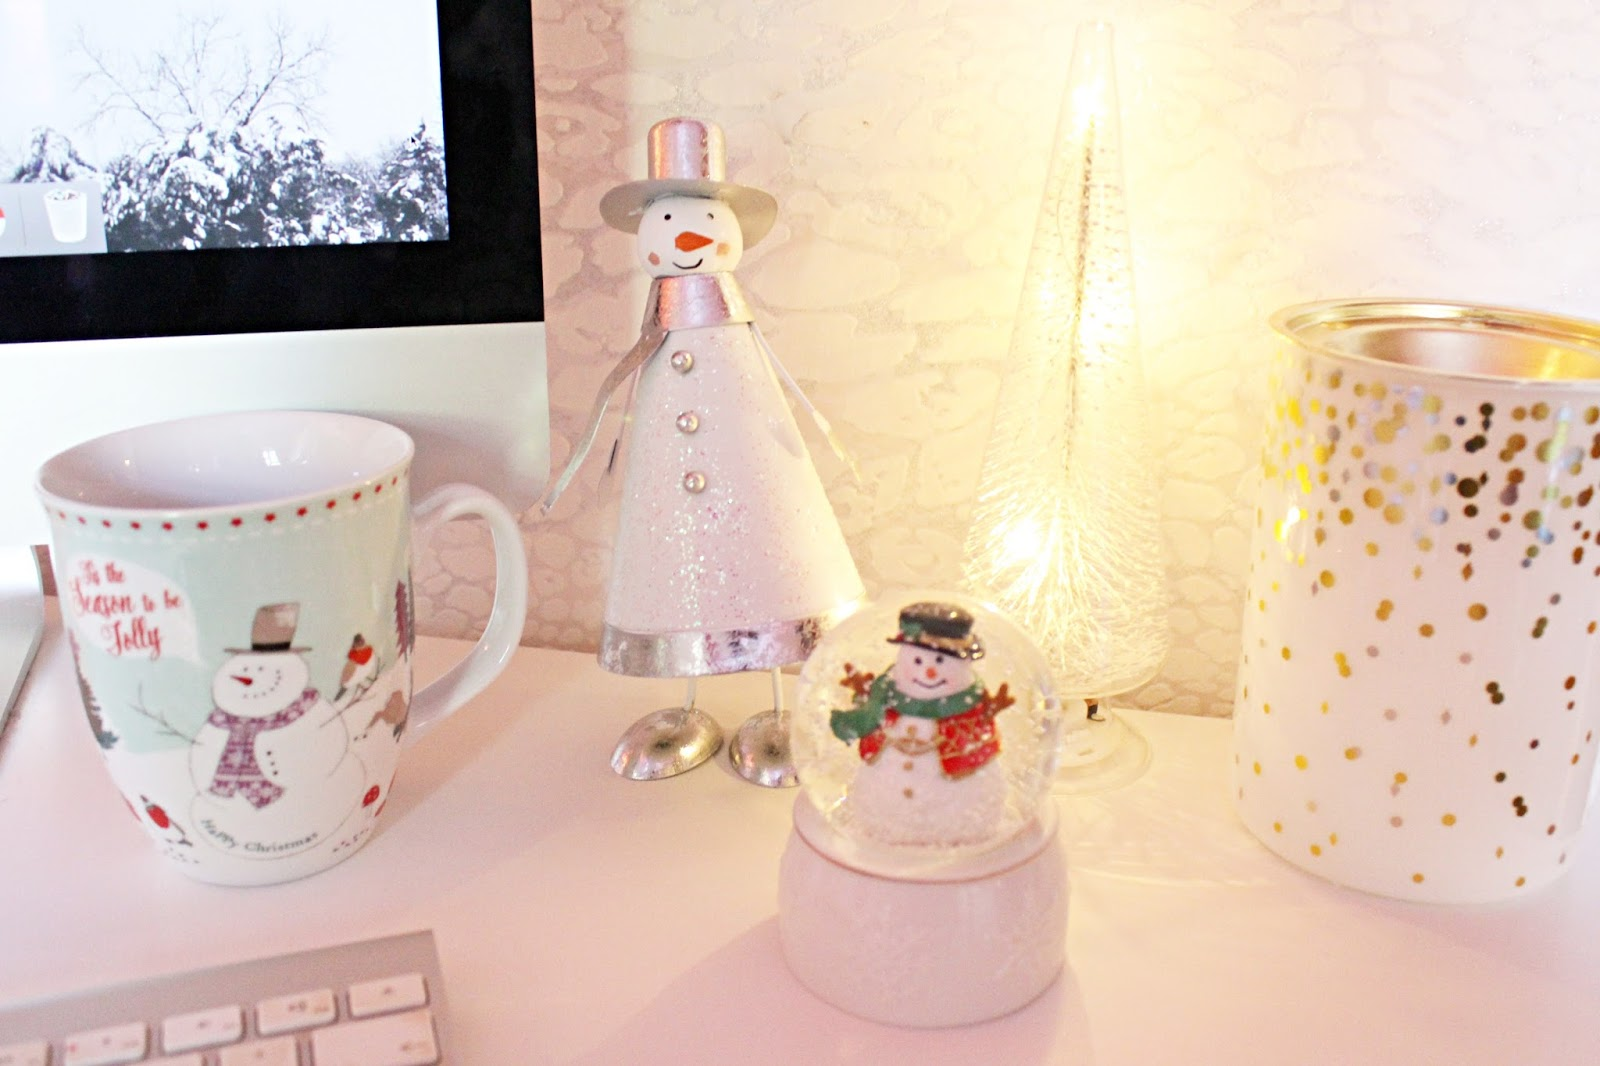 My Festive Workspace